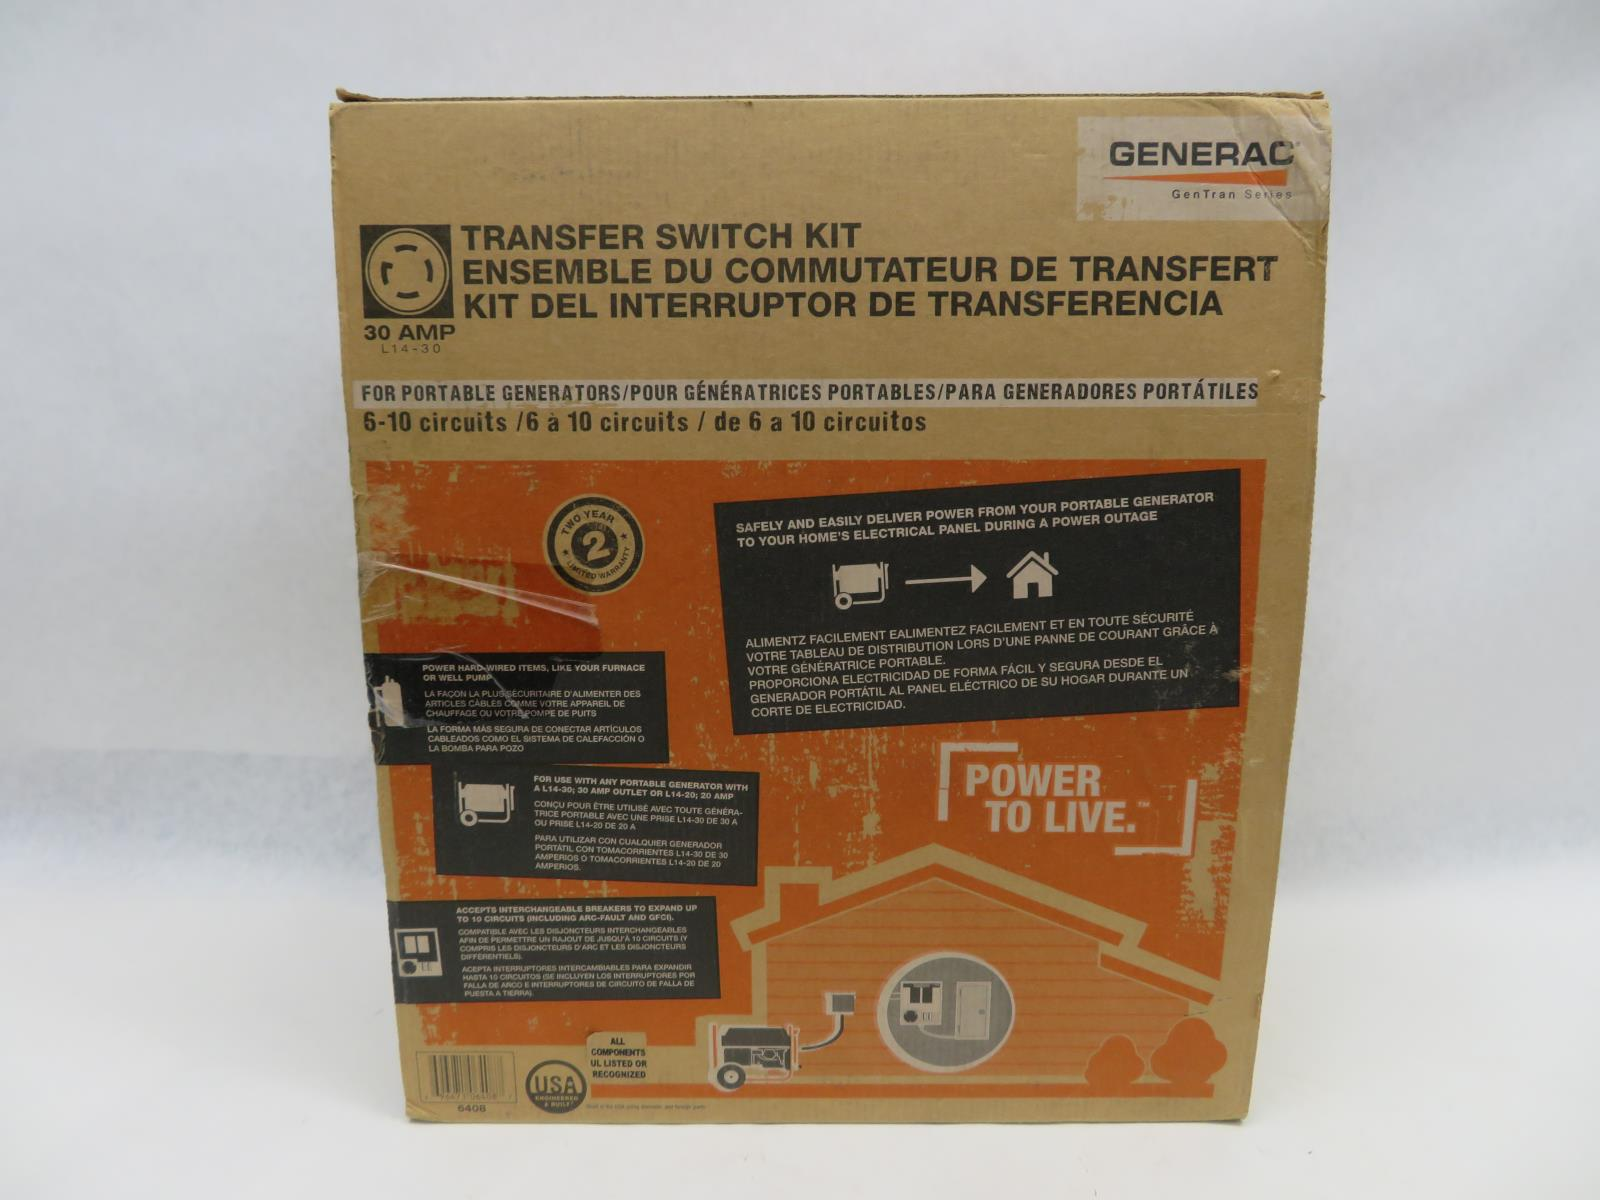 Generac 6408 30 Amp 6 10 Circuit Indoor Manual Transfer Switch Kit Wiring Diagram Gentran Problem With Your Order Please Do Not Leave Negative Neutral Feedback Or Open A Case Before Contacting Us Allow The Chance To Fix